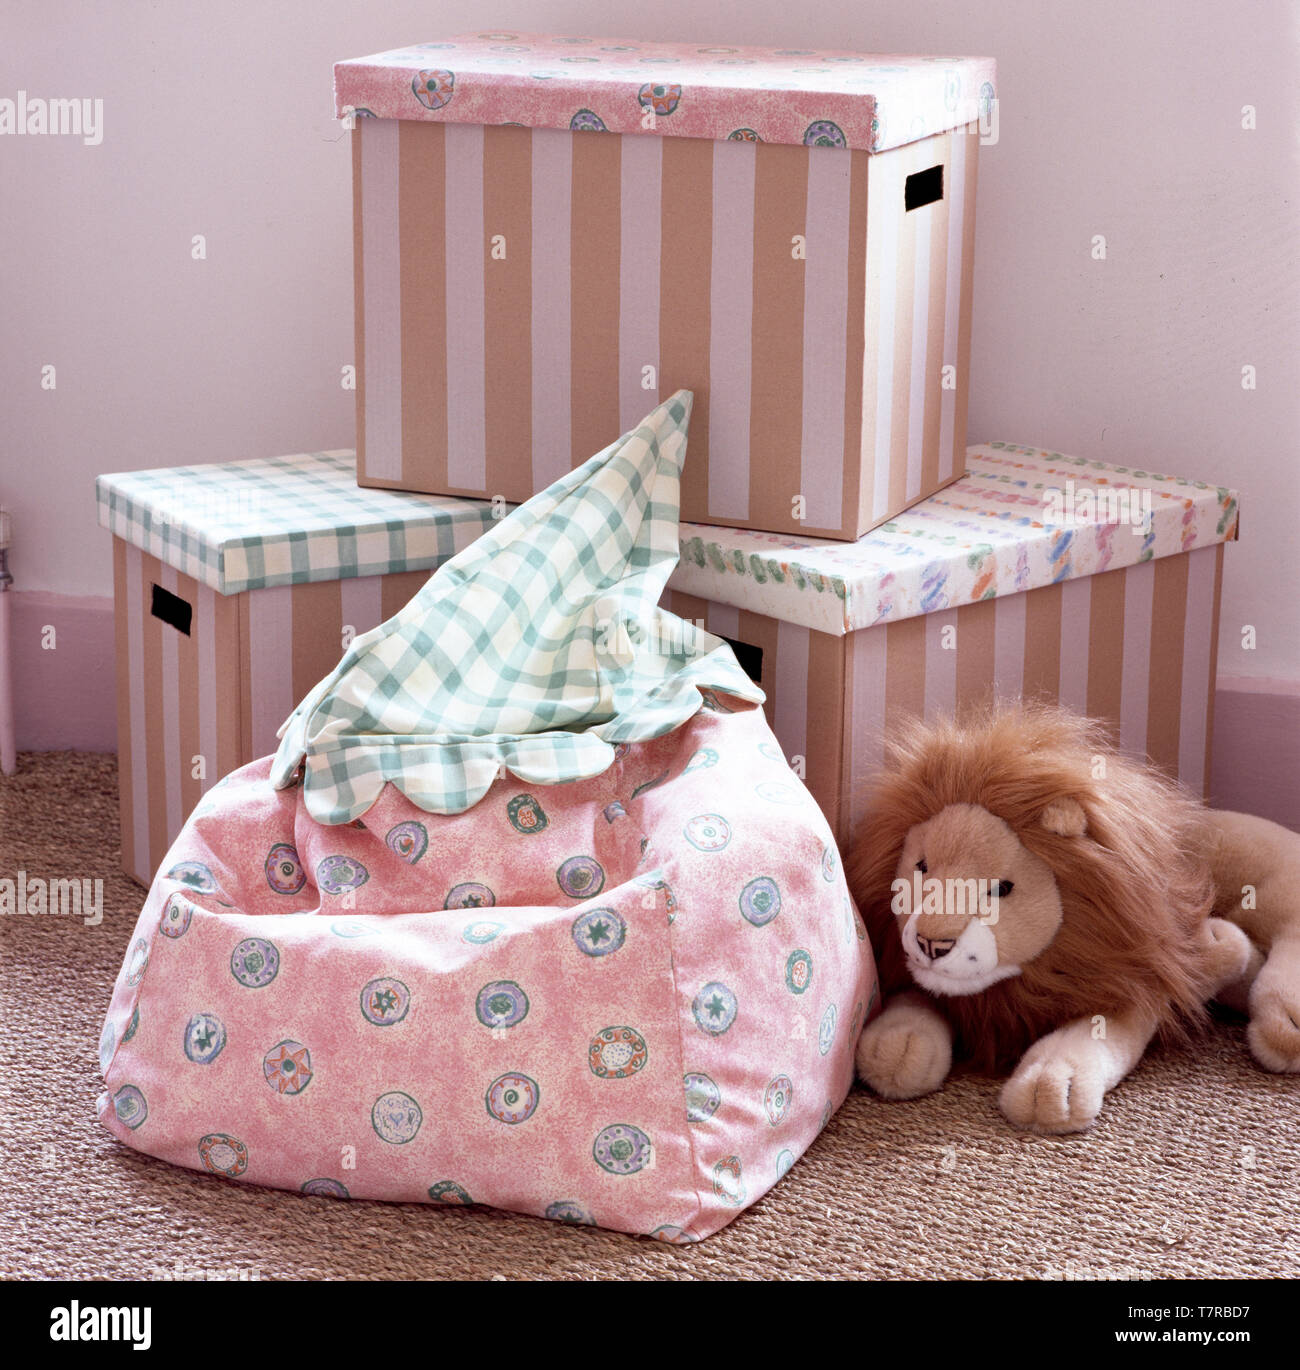 Child's bean bag and toy lion with striped storage boxes - Stock Image